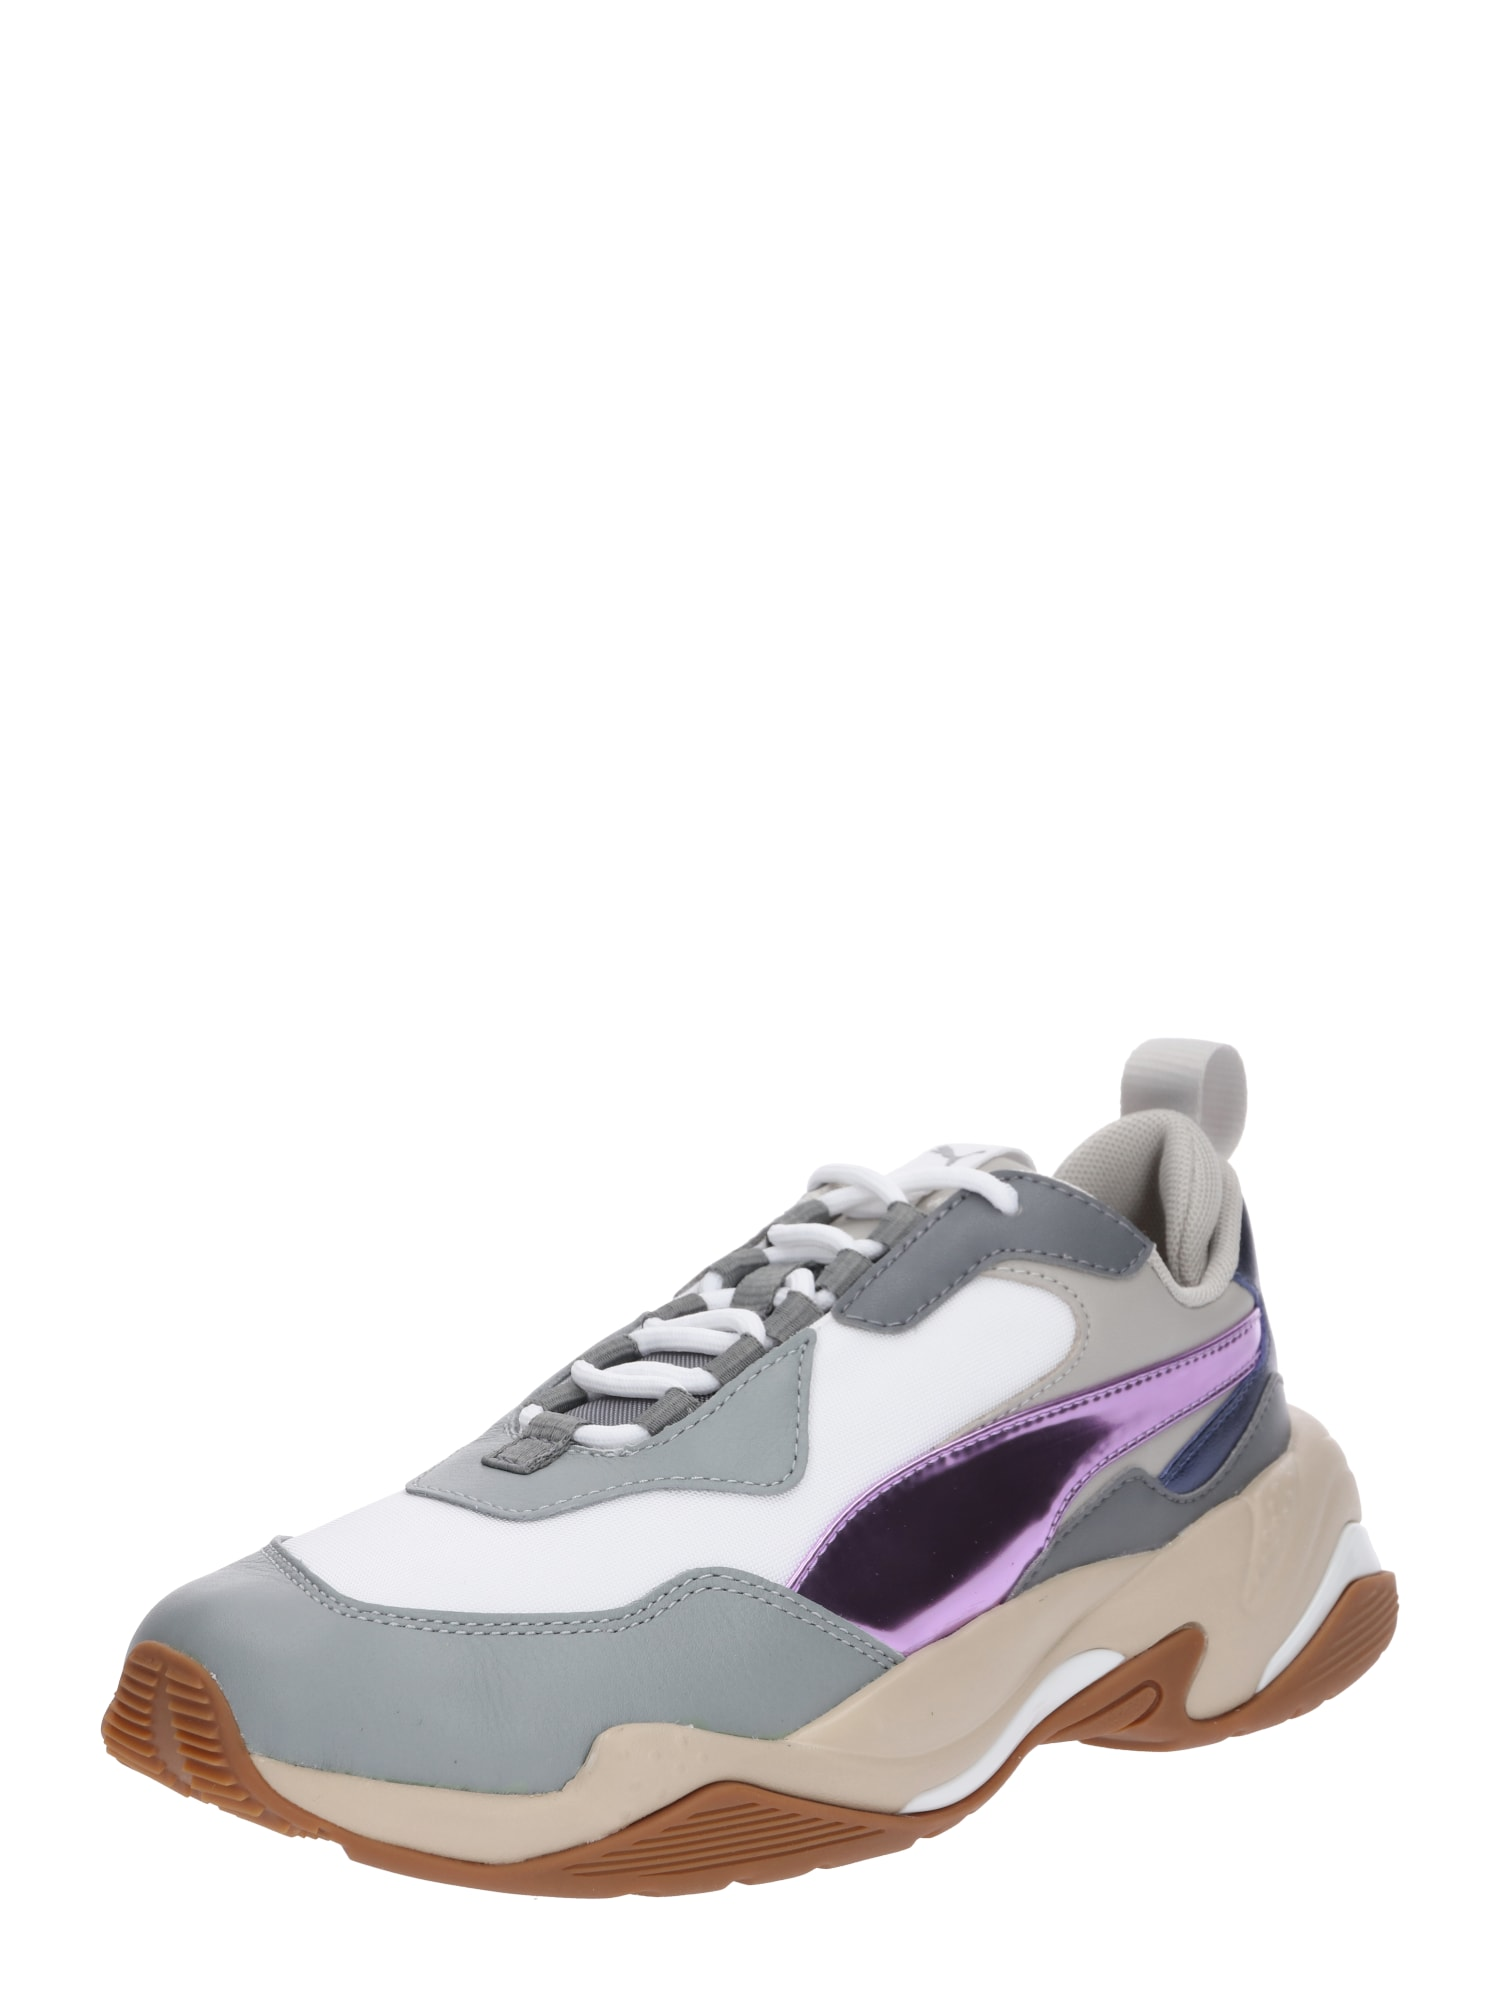 PUMA, Dames Sneakers laag 'Thunder Electric', lichtgrijs / violetblauw